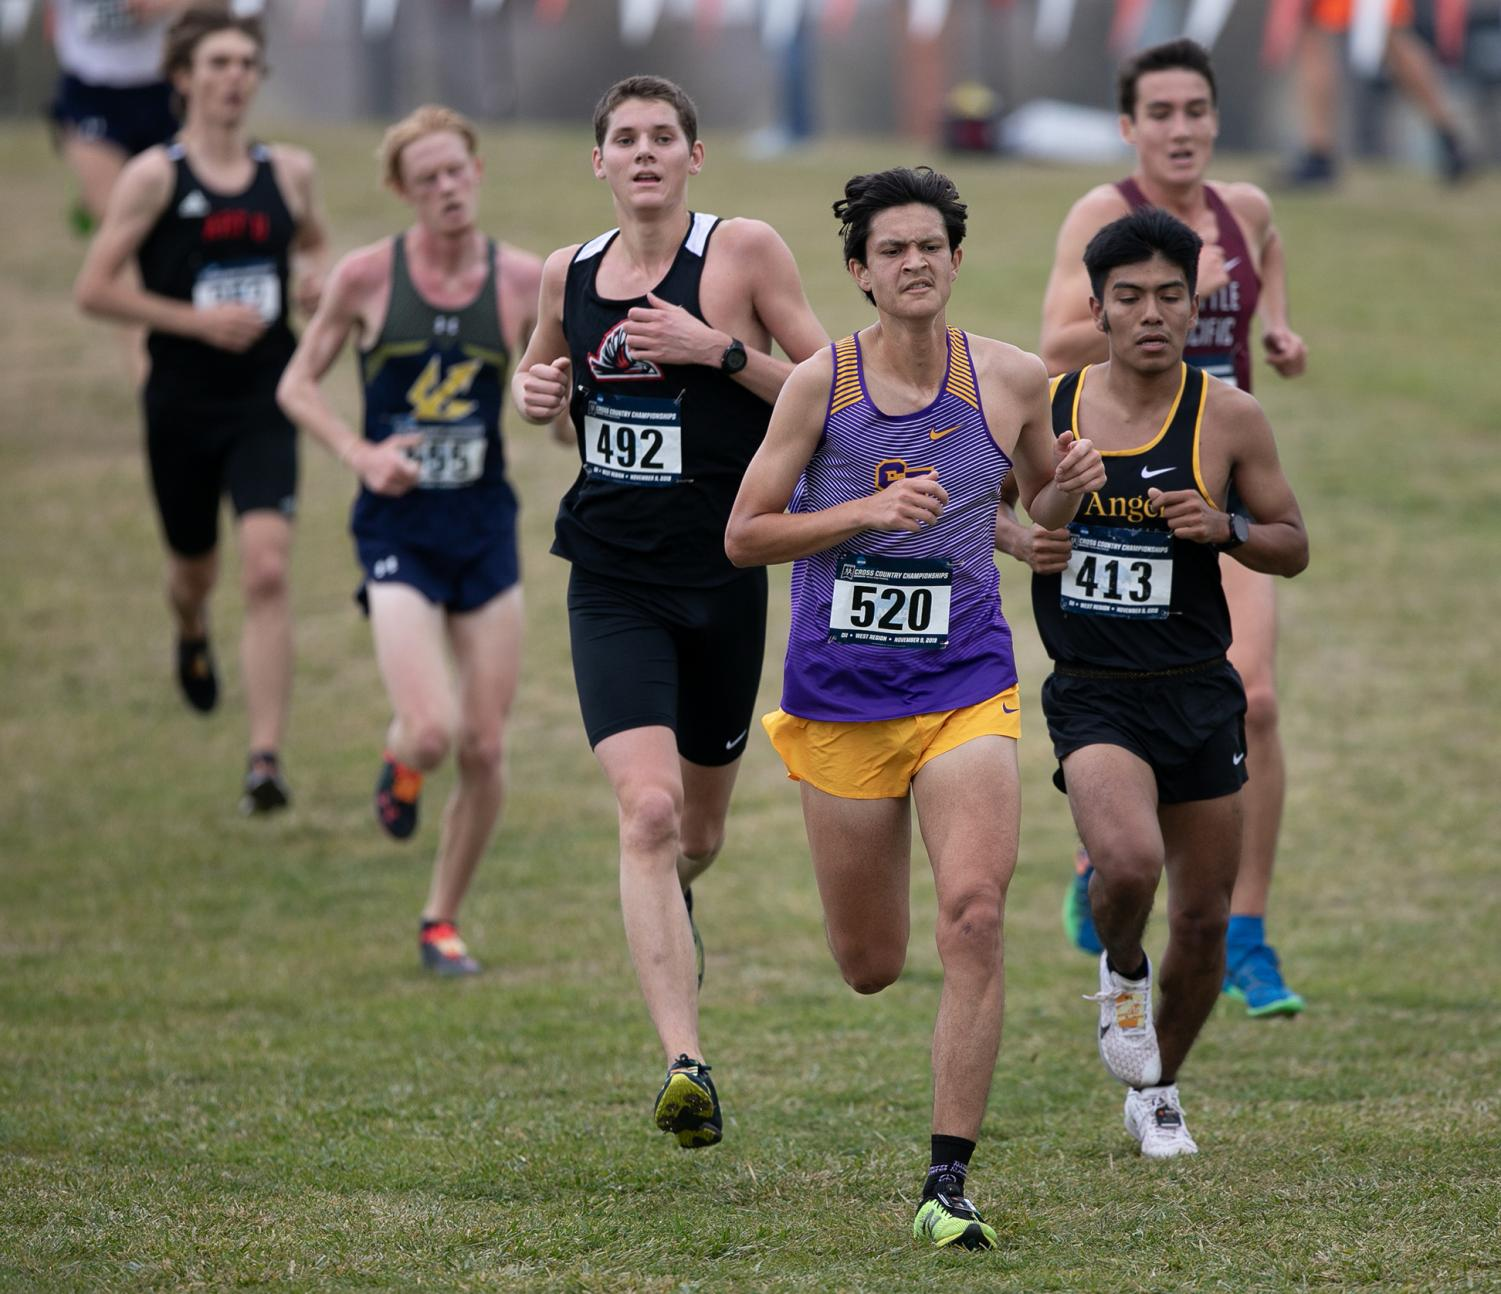 Cal State LA men's cross country finished 21st overall with 546 points total.